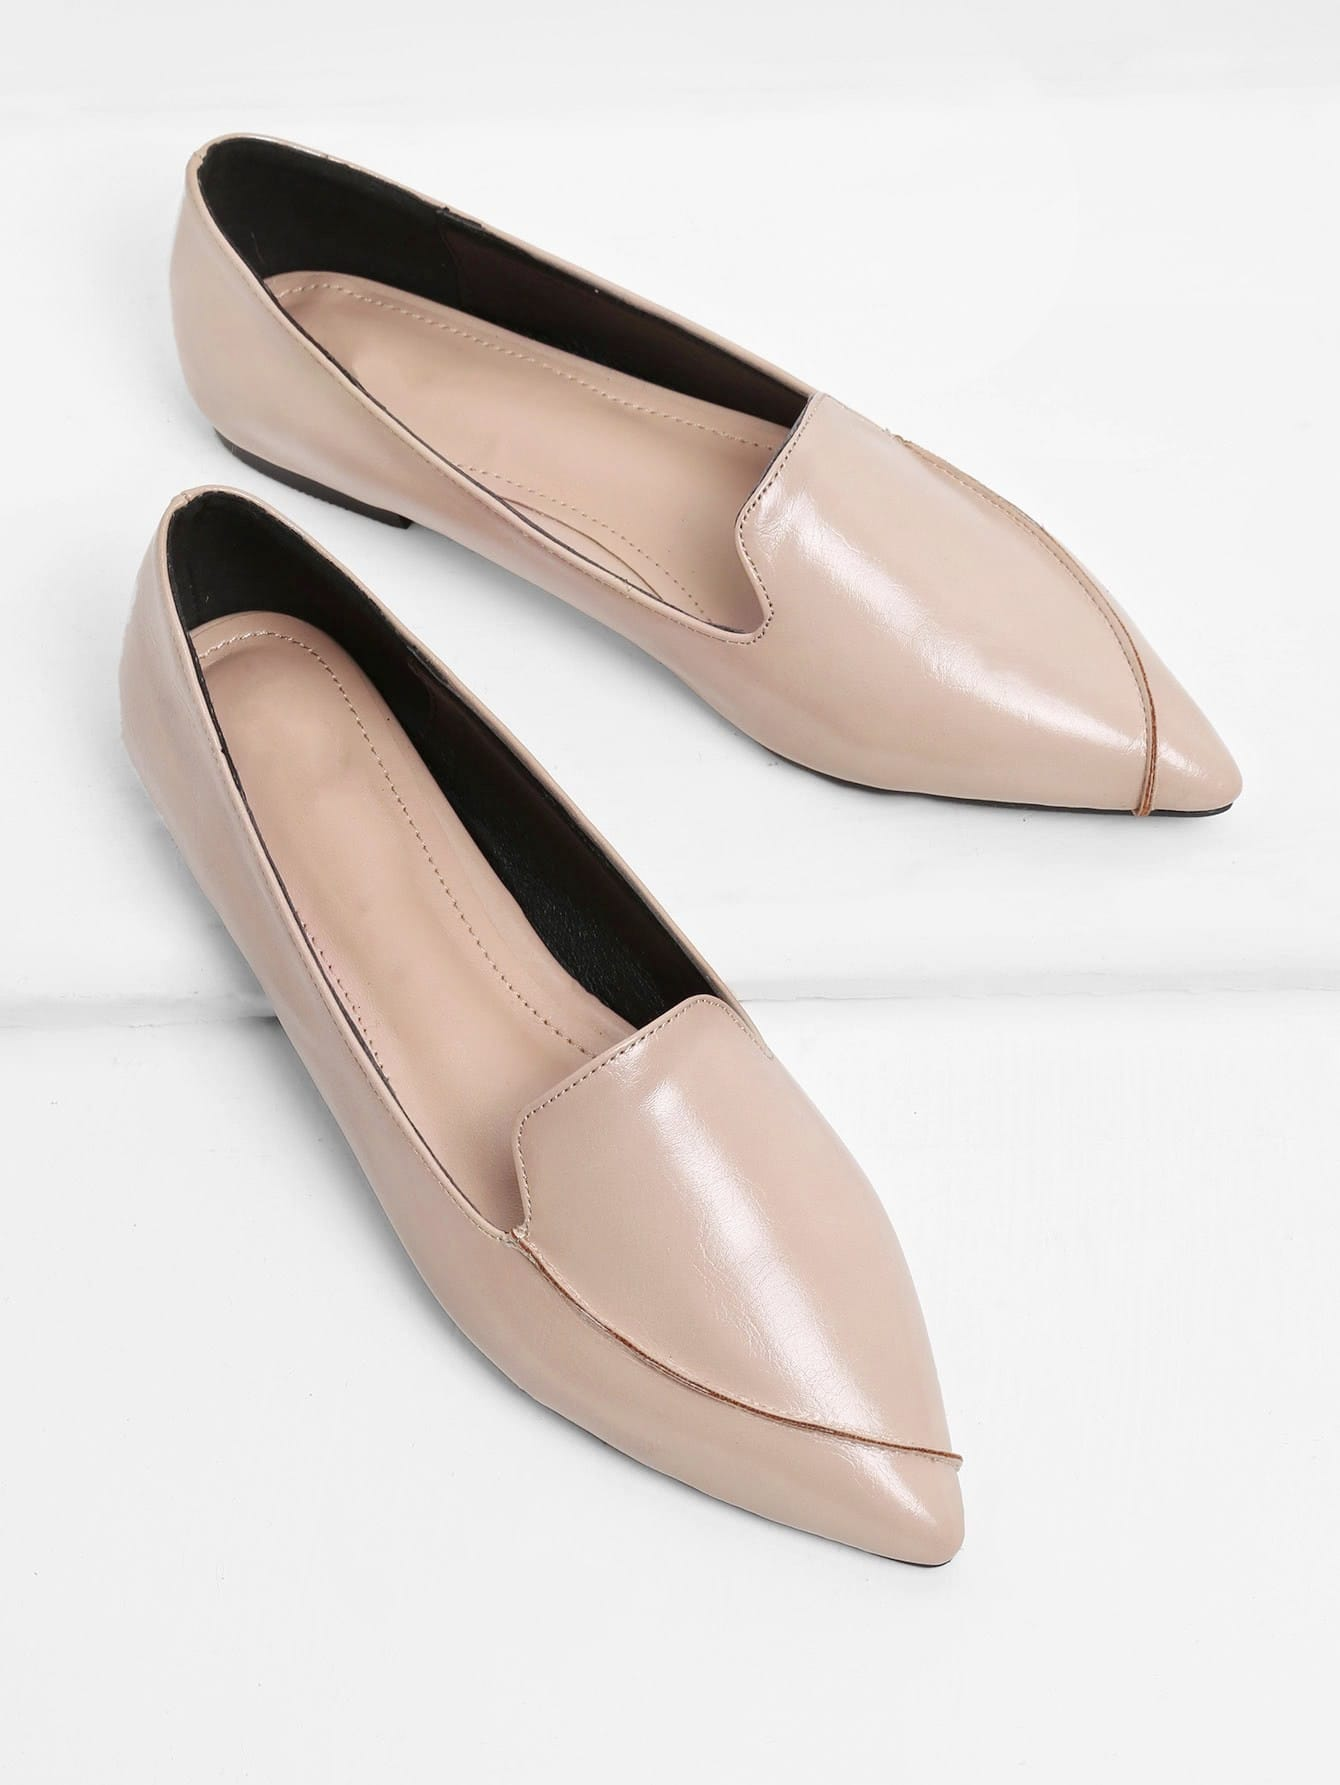 Pointed Toe Faux Leather Flats pointed toe faux leather flats